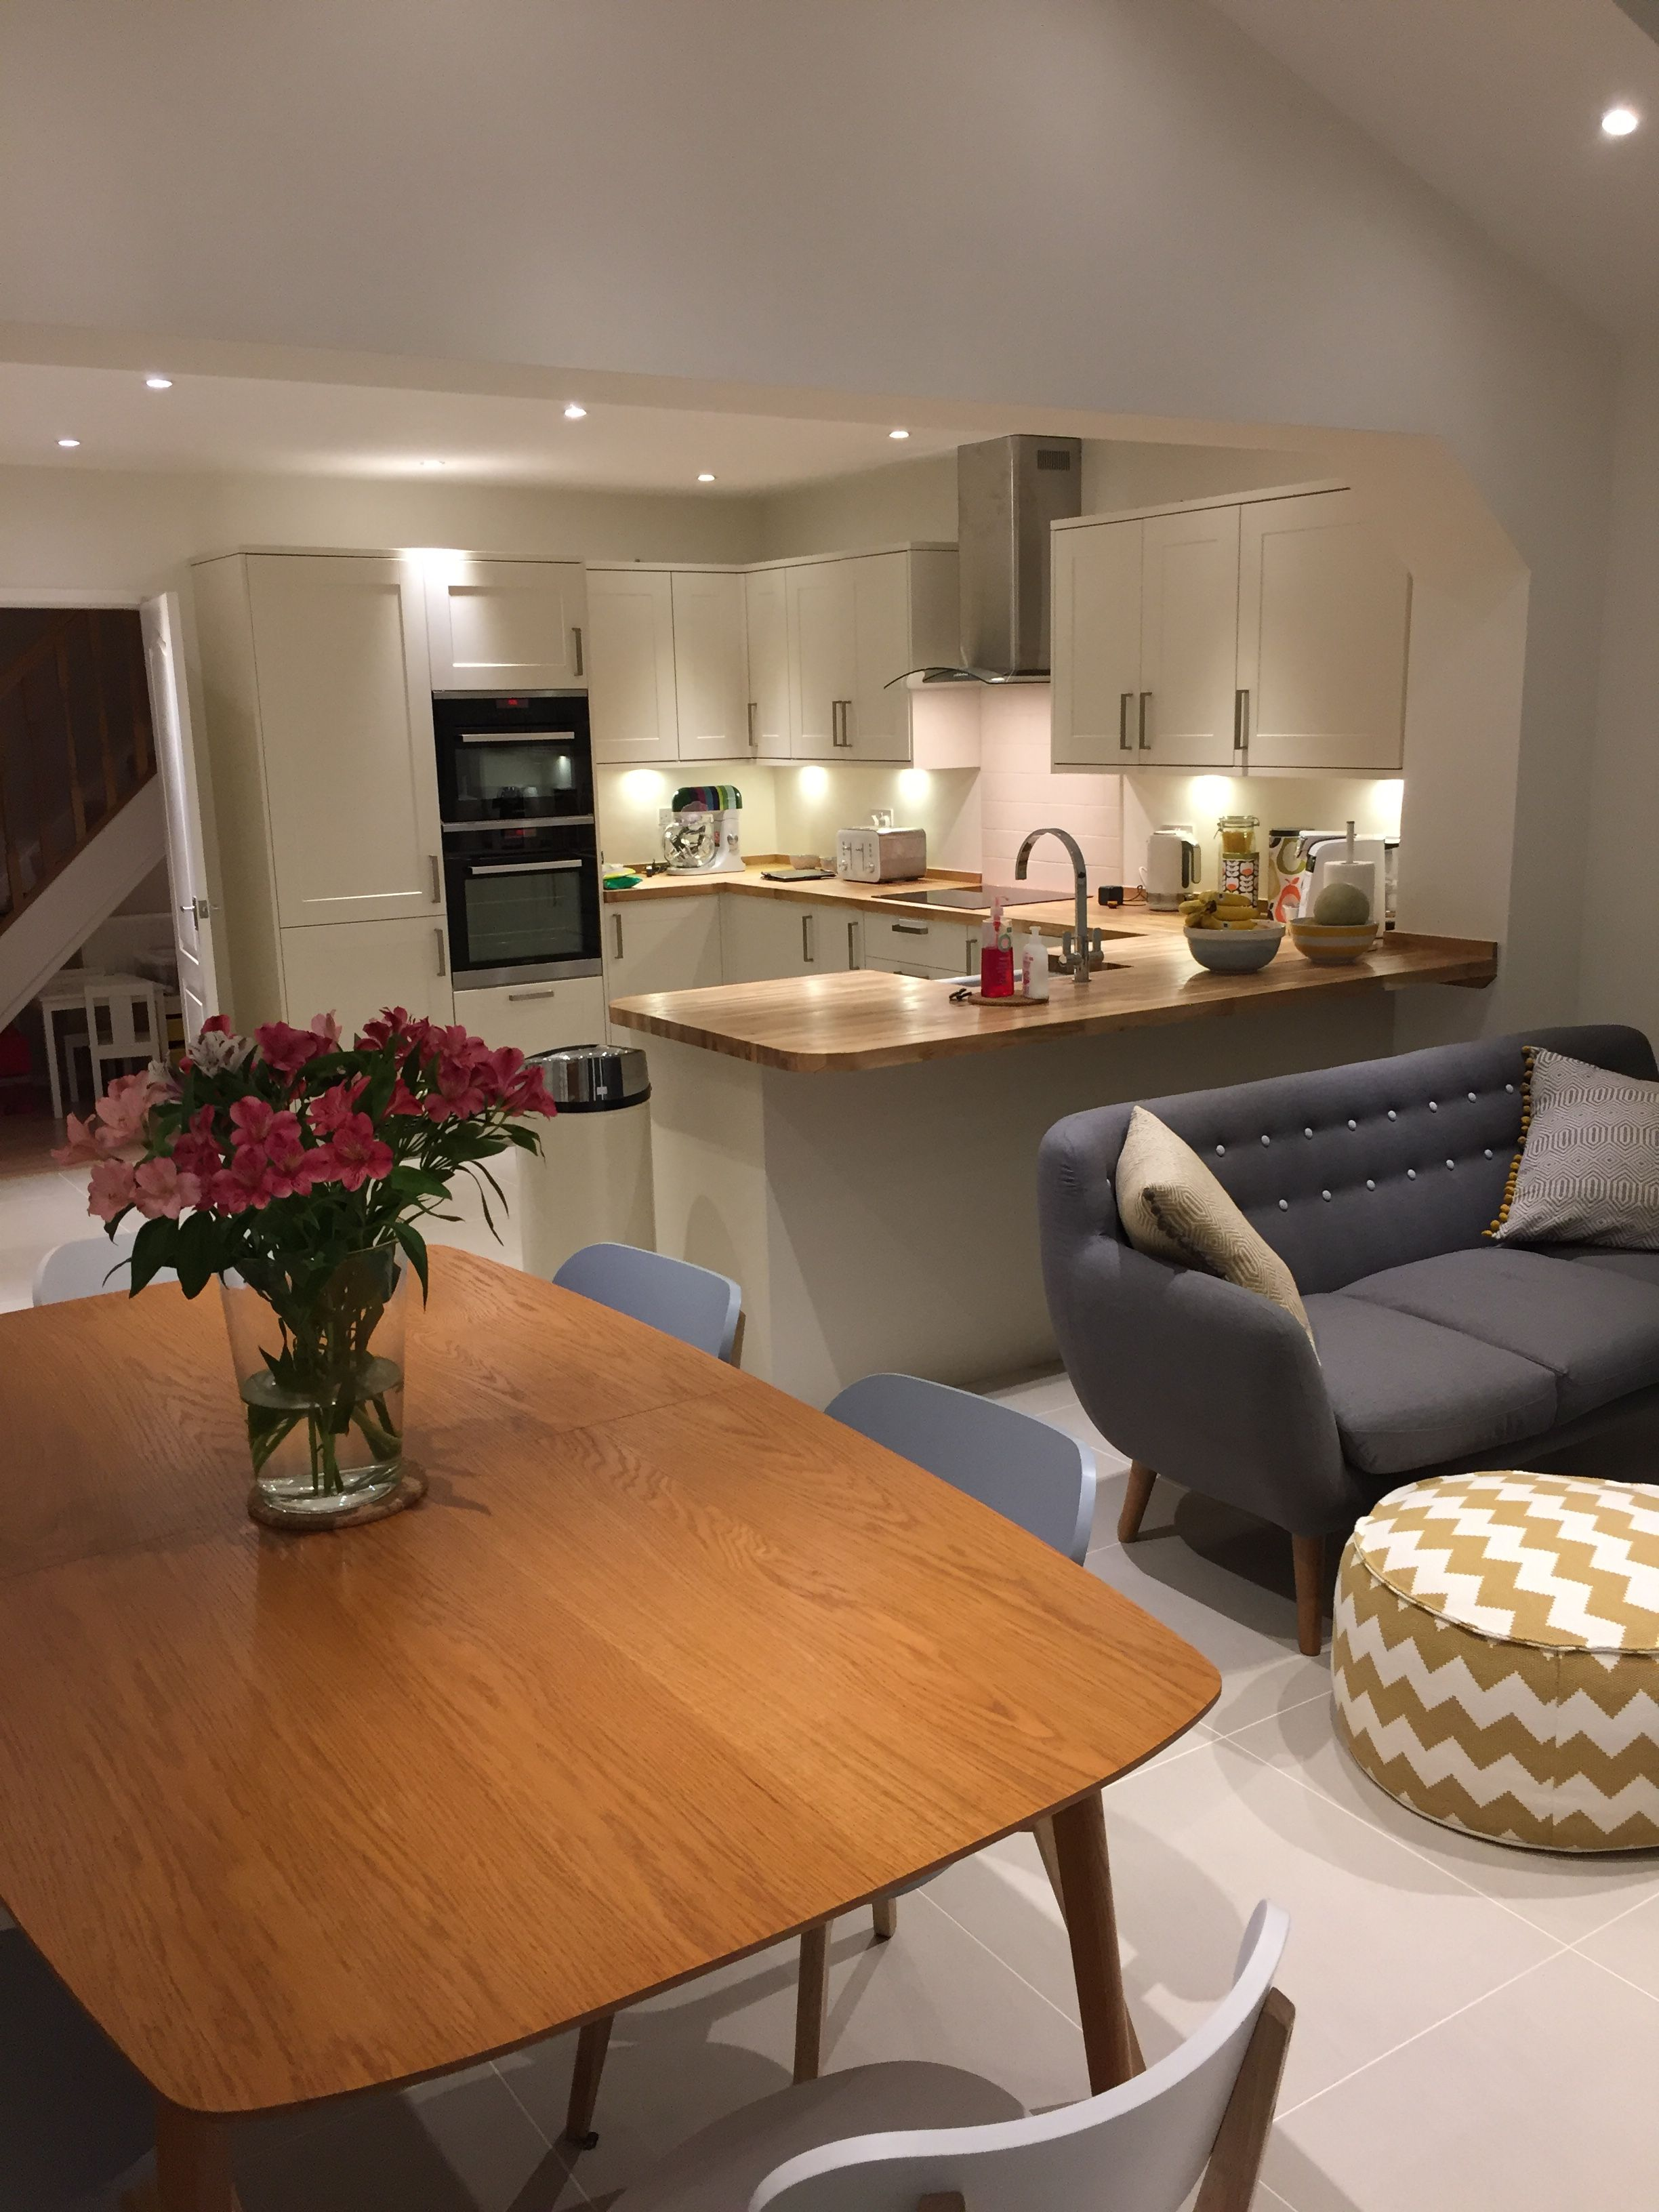 My Open Plan Kitchen Dining And Family Area Open Plan Kitchen Living Room Open Plan Kitchen Dining Living Open Plan Kitchen Diner